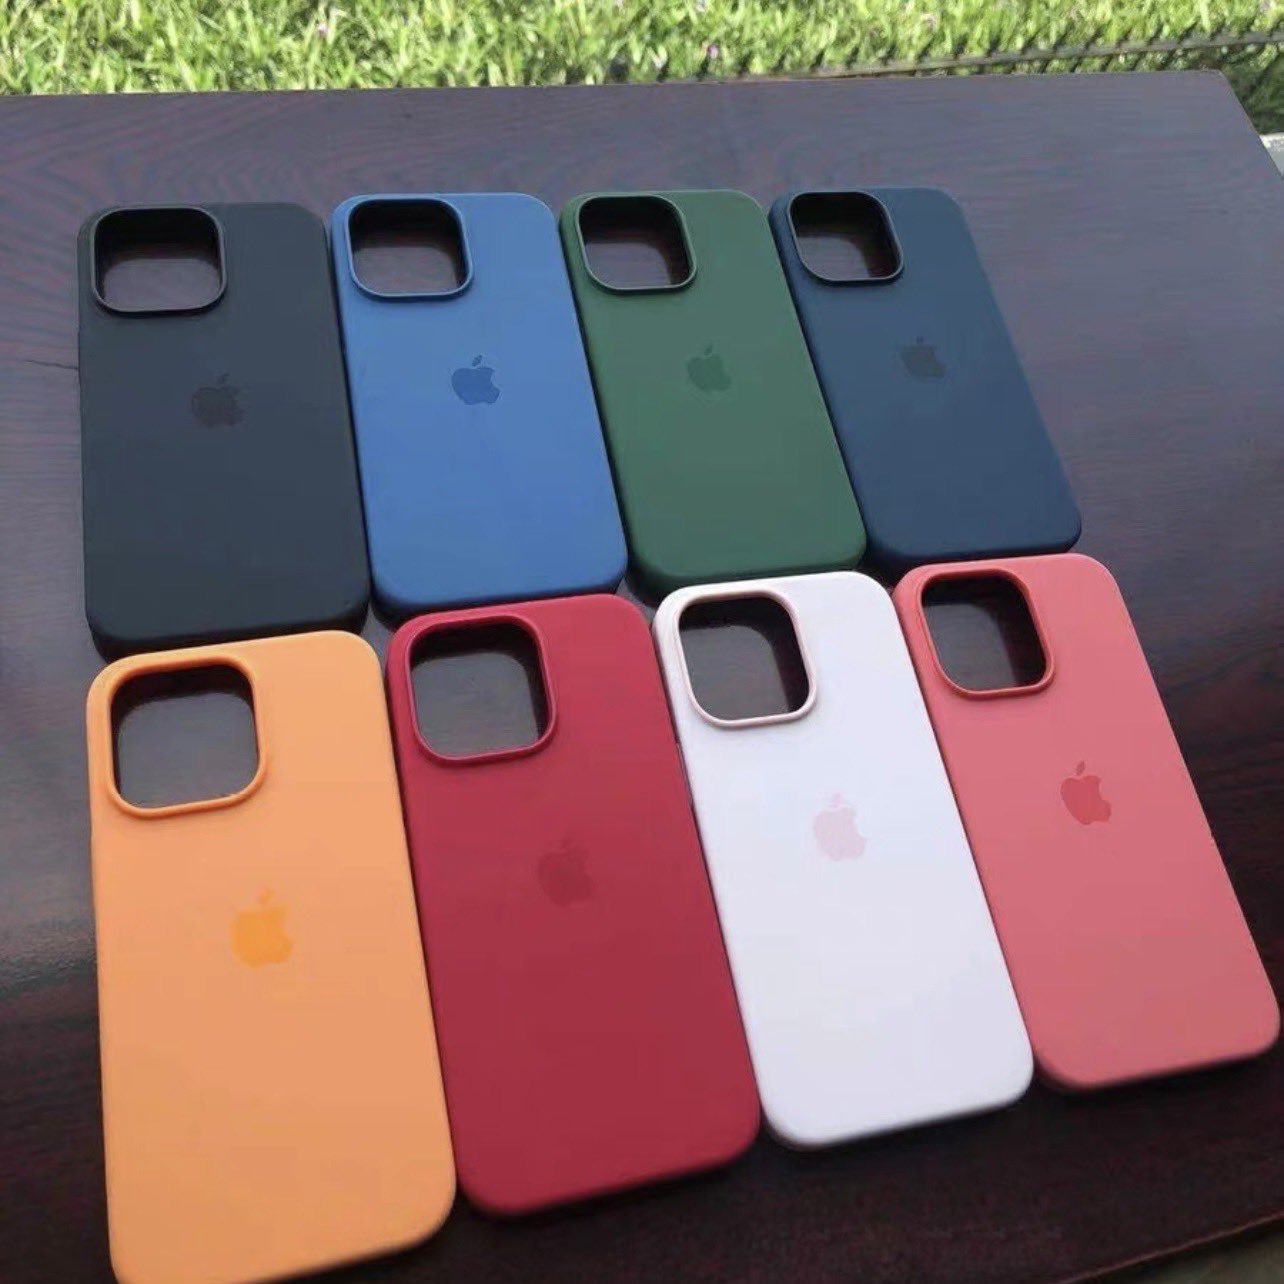 Protections iPhone 13 Apple